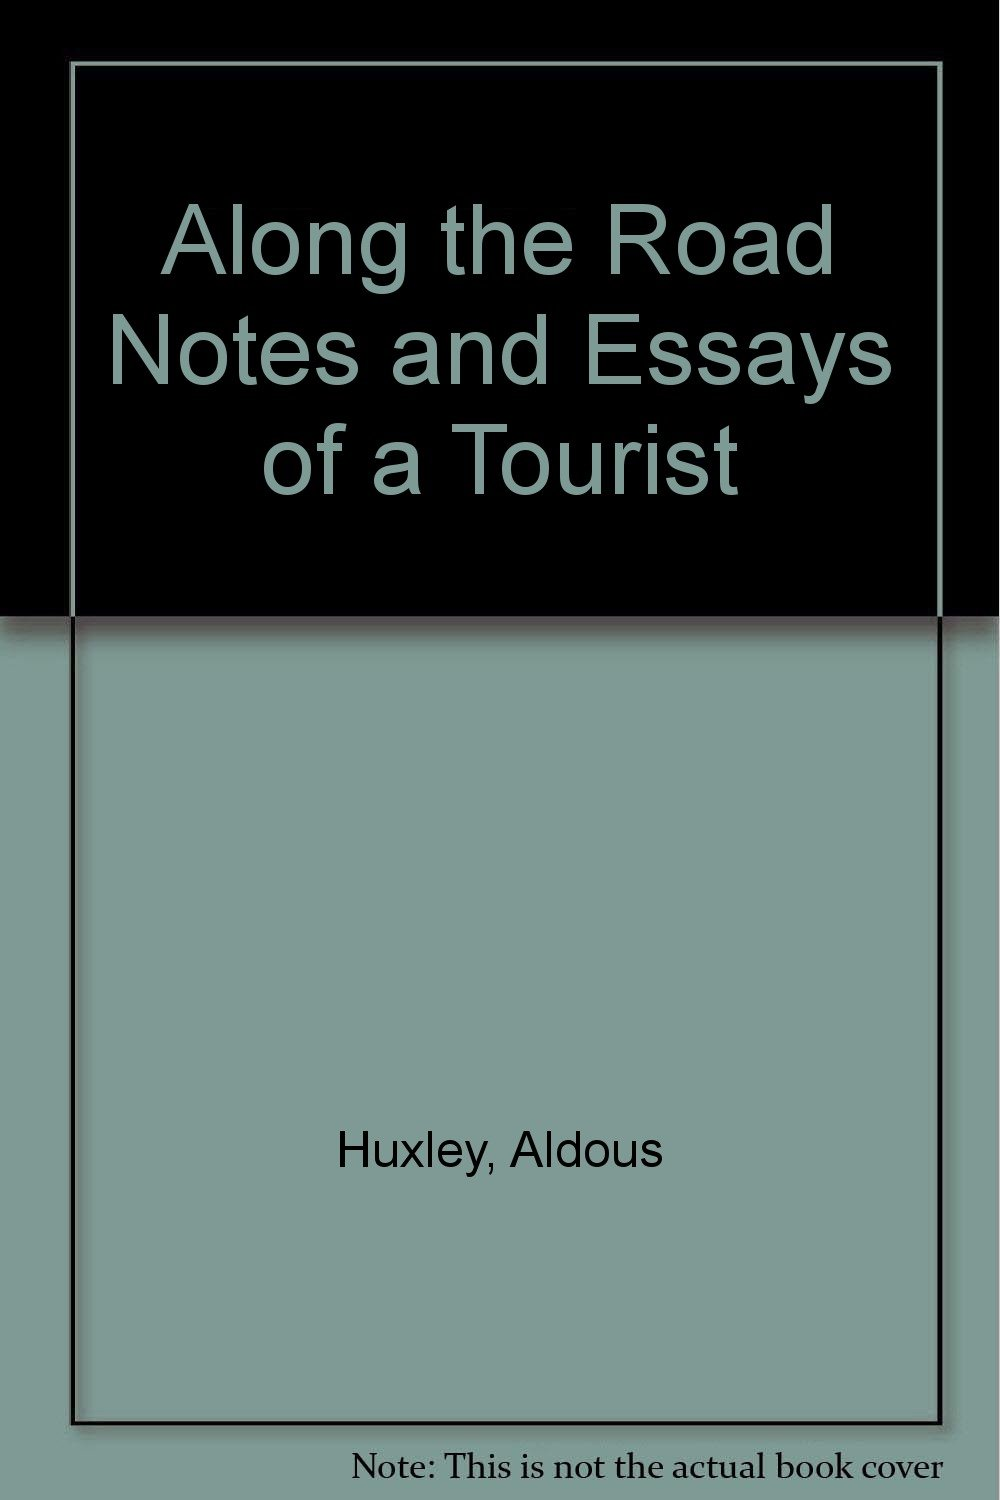 aldous huxley essay brave new world by aldous huxley dust jacket  along the road notes and essays of a tourist essay index reprint along the road notes